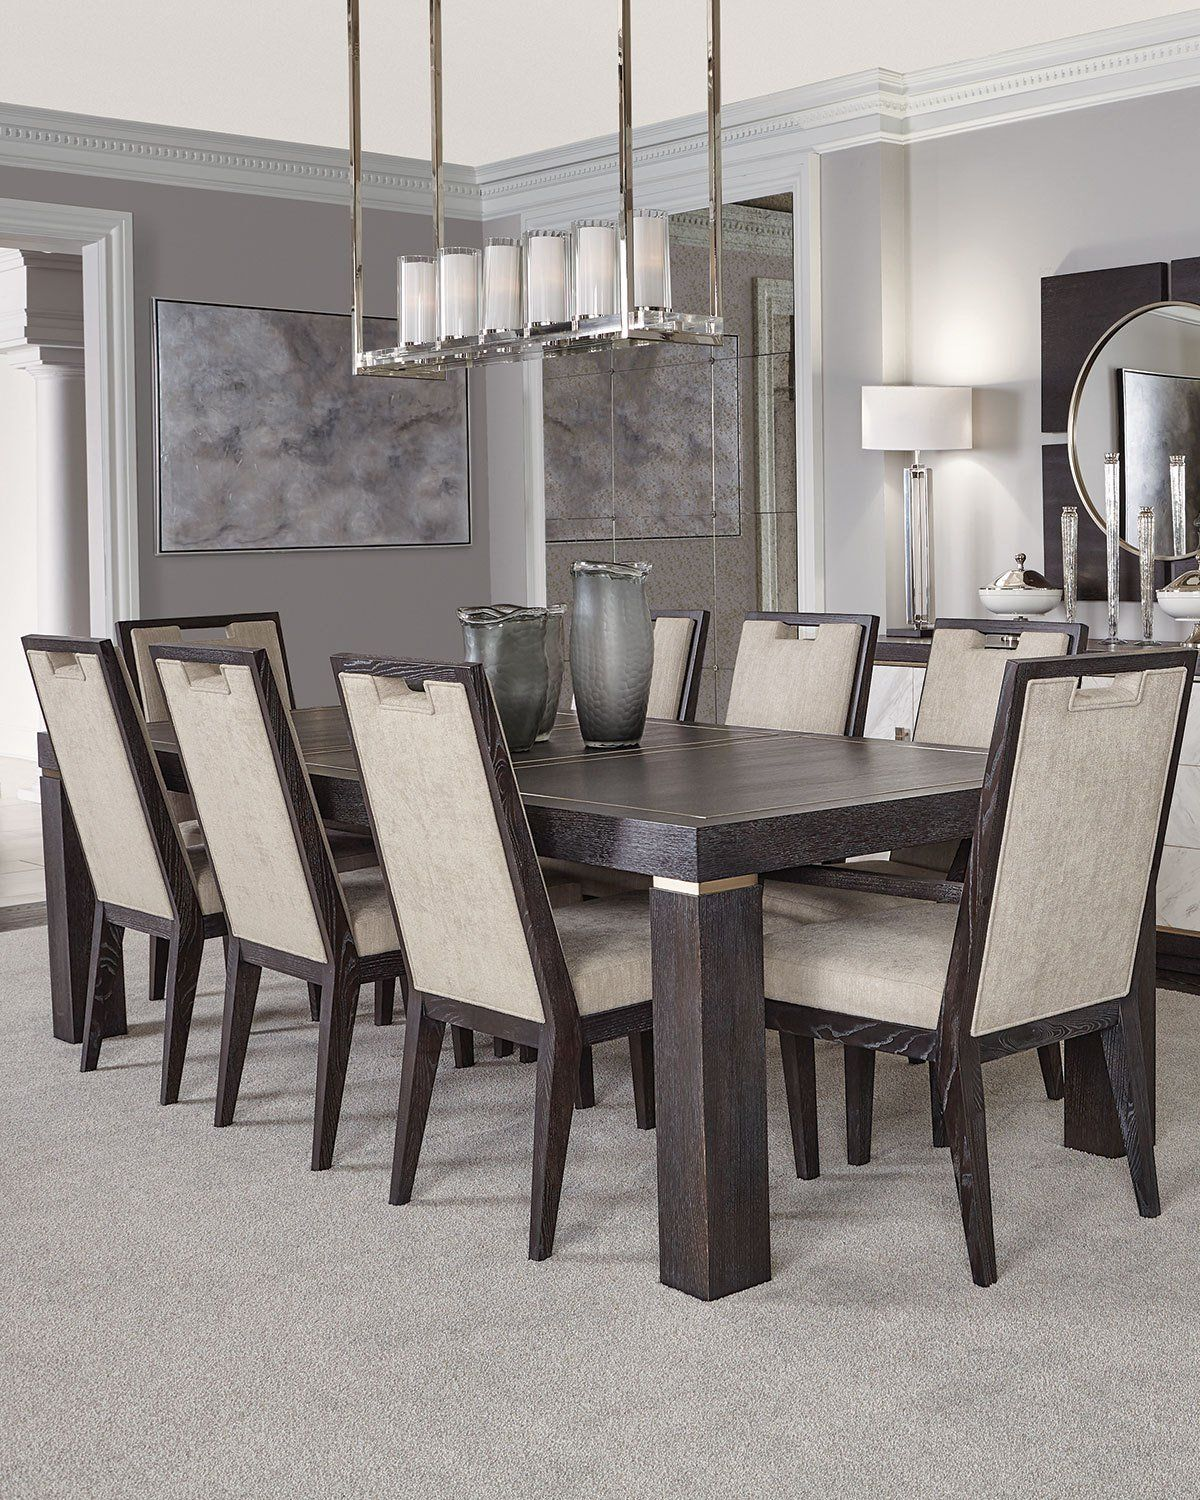 Bernhardt Decorage Stainless Trim Dining Table Dining Table